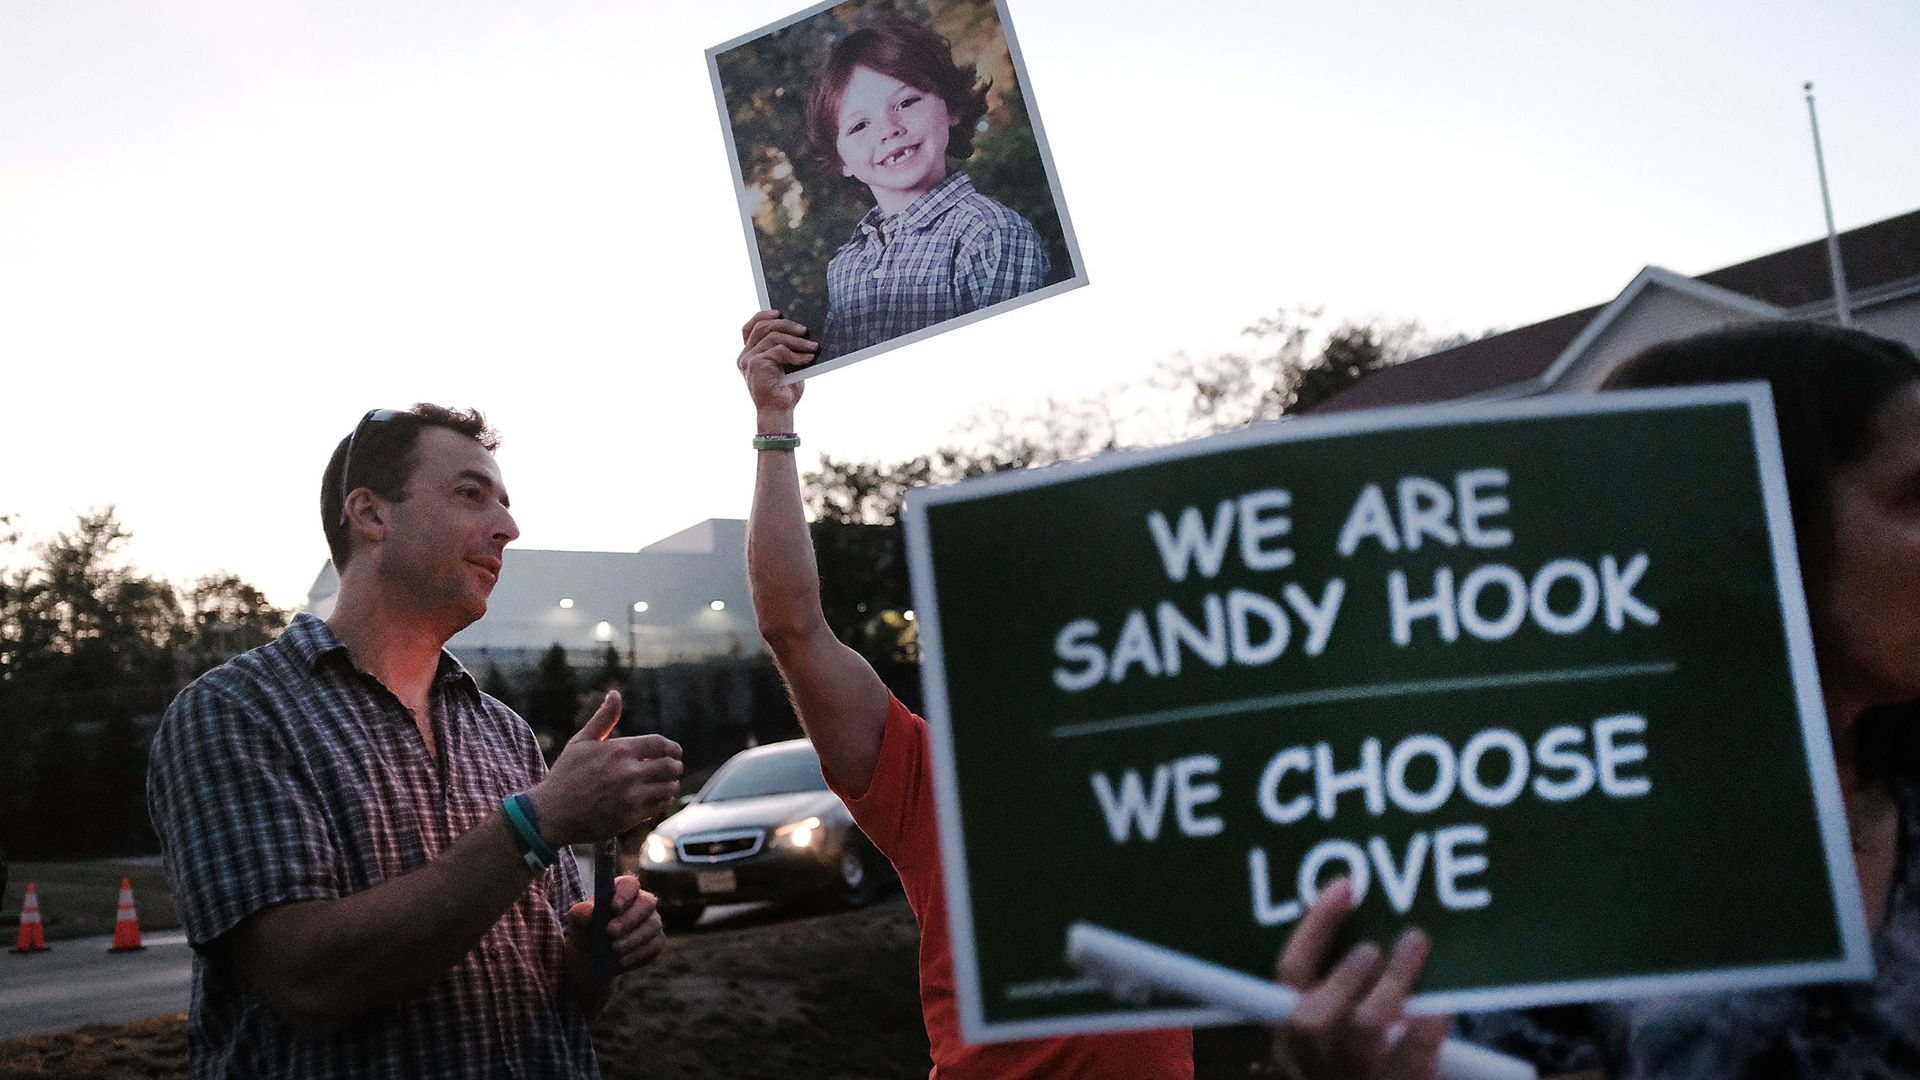 Protesters against gun violence in Sandy Hook